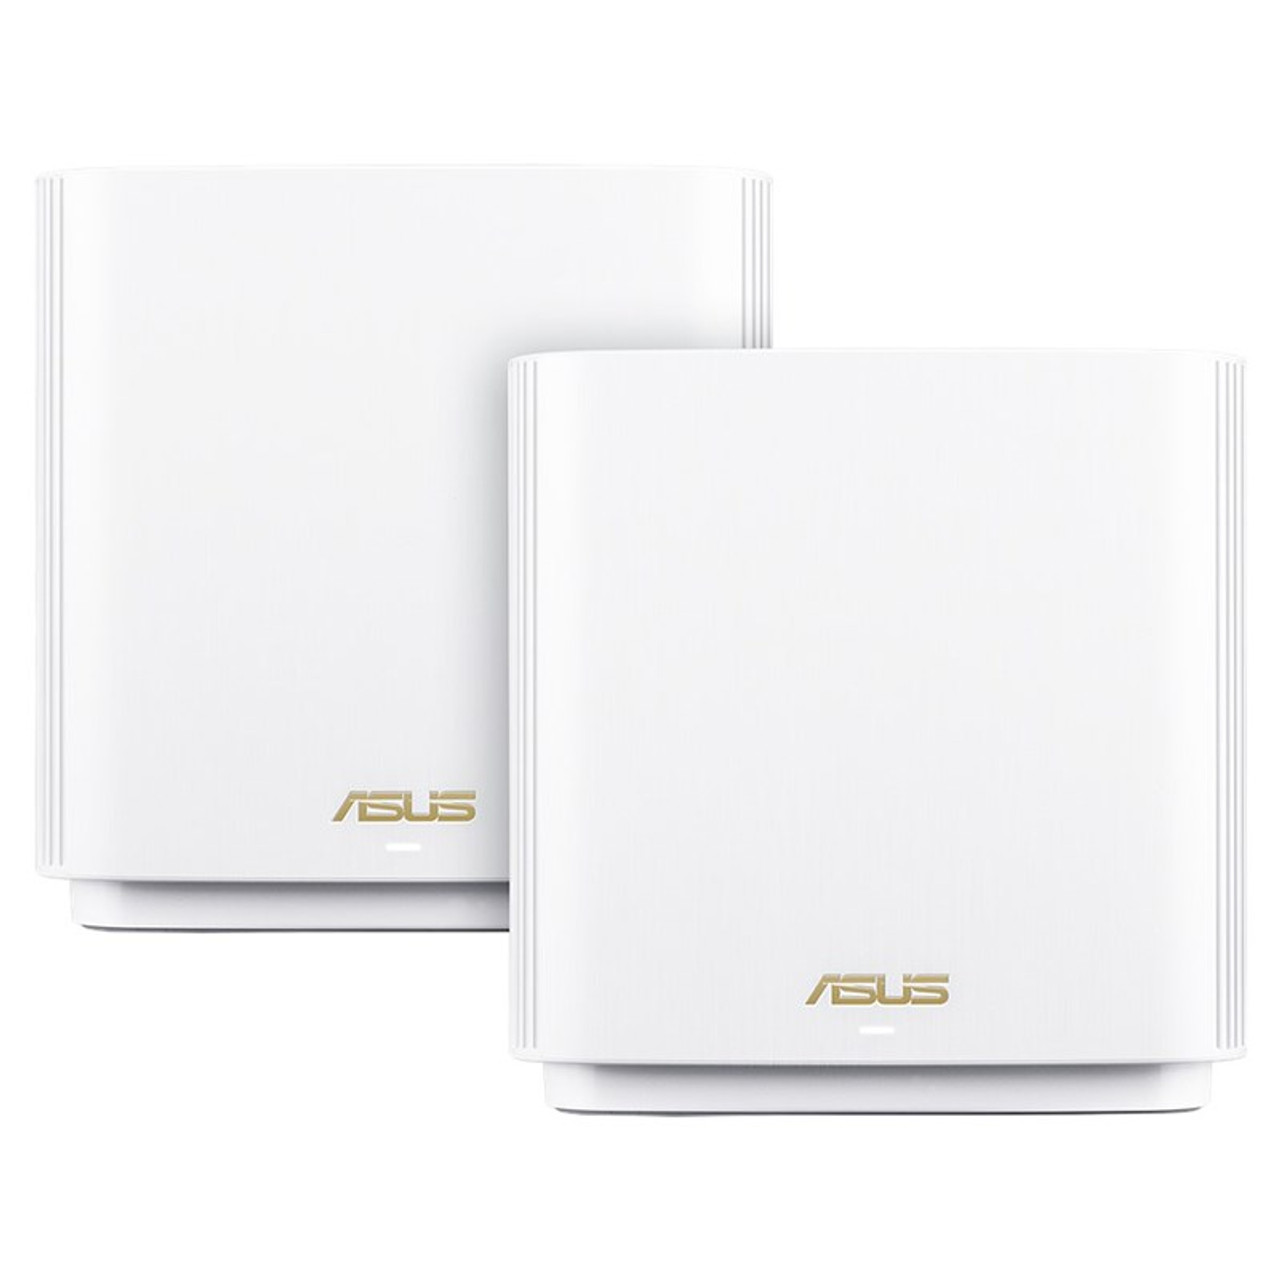 Image for Asus XT8 AX6600 ZenWiFi Tri Band Mesh WiFi 6 Gigabit System - White 2 Pack CX Computer Superstore